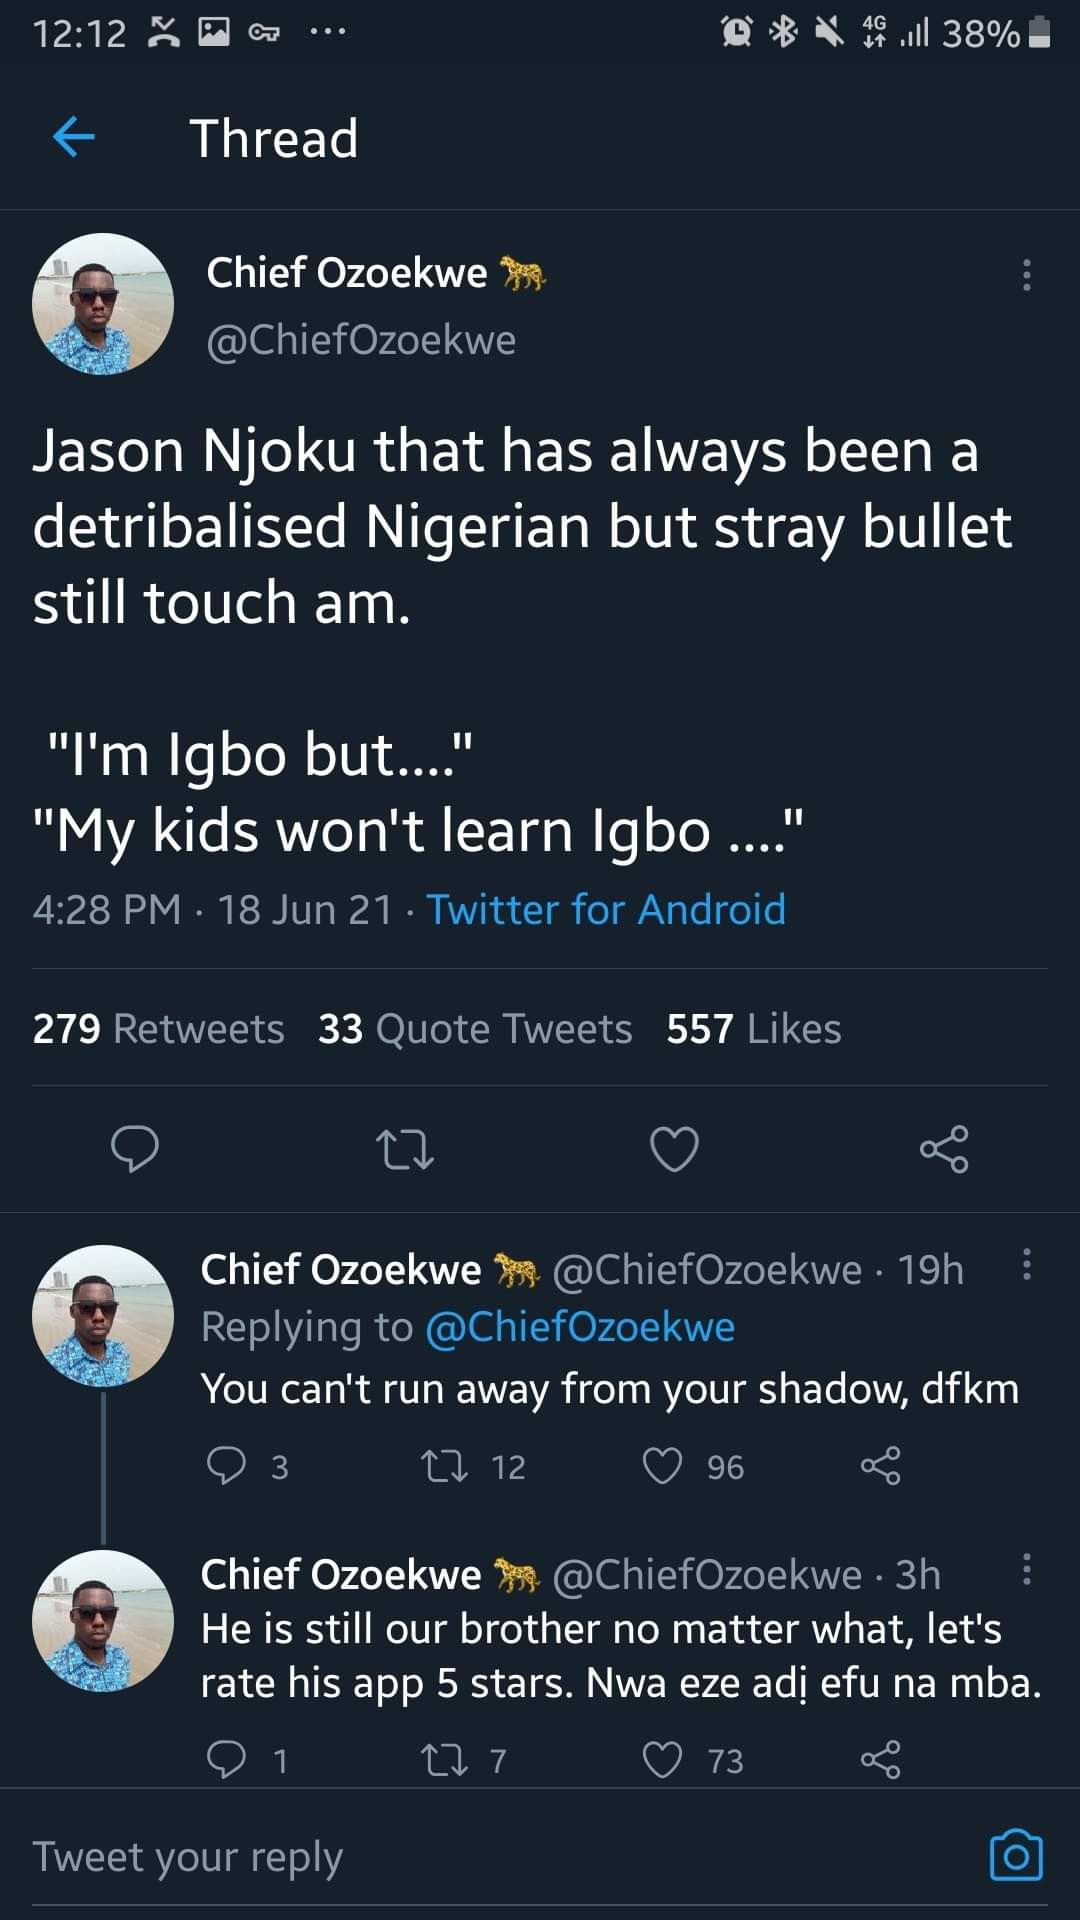 Jason Njoku apologizes to Ndi Igbo after they rallied round to save his app from bad reviews posted as vengeance